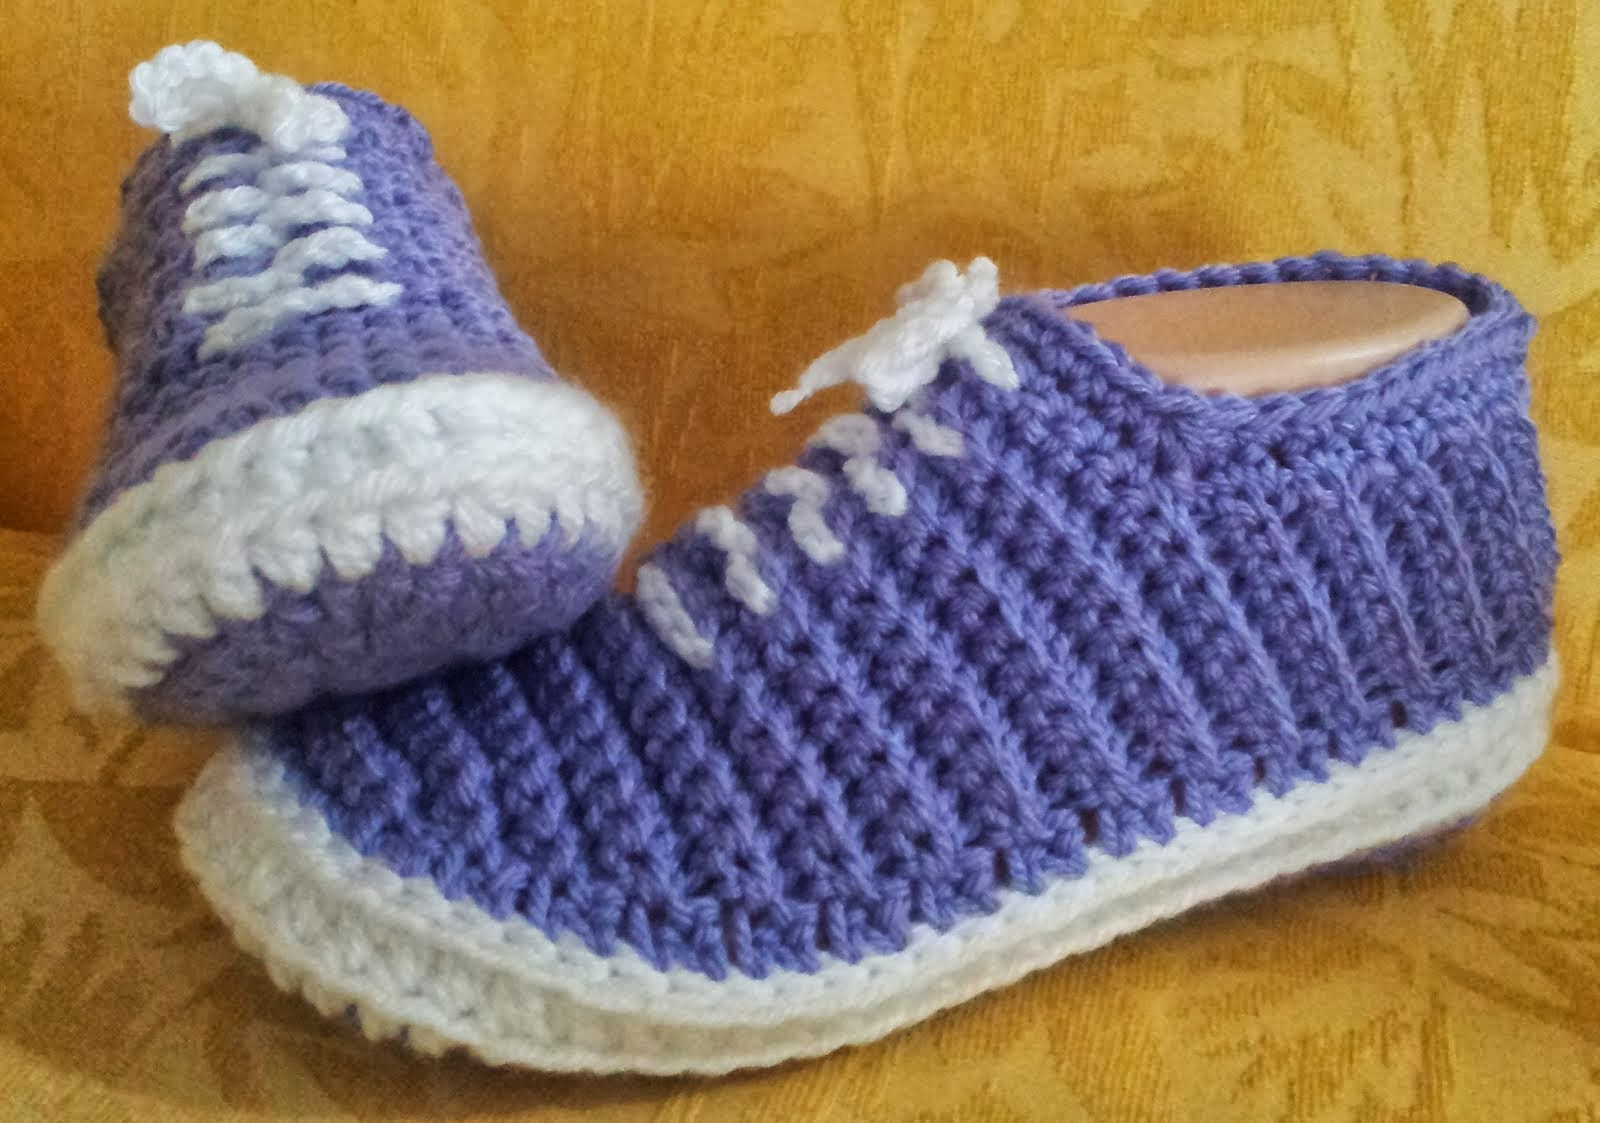 Free Slipper Patterns New Shush S Handmade Stuff Crochet Sneakers Pdf Pattern Of Luxury 50 Ideas Free Slipper Patterns